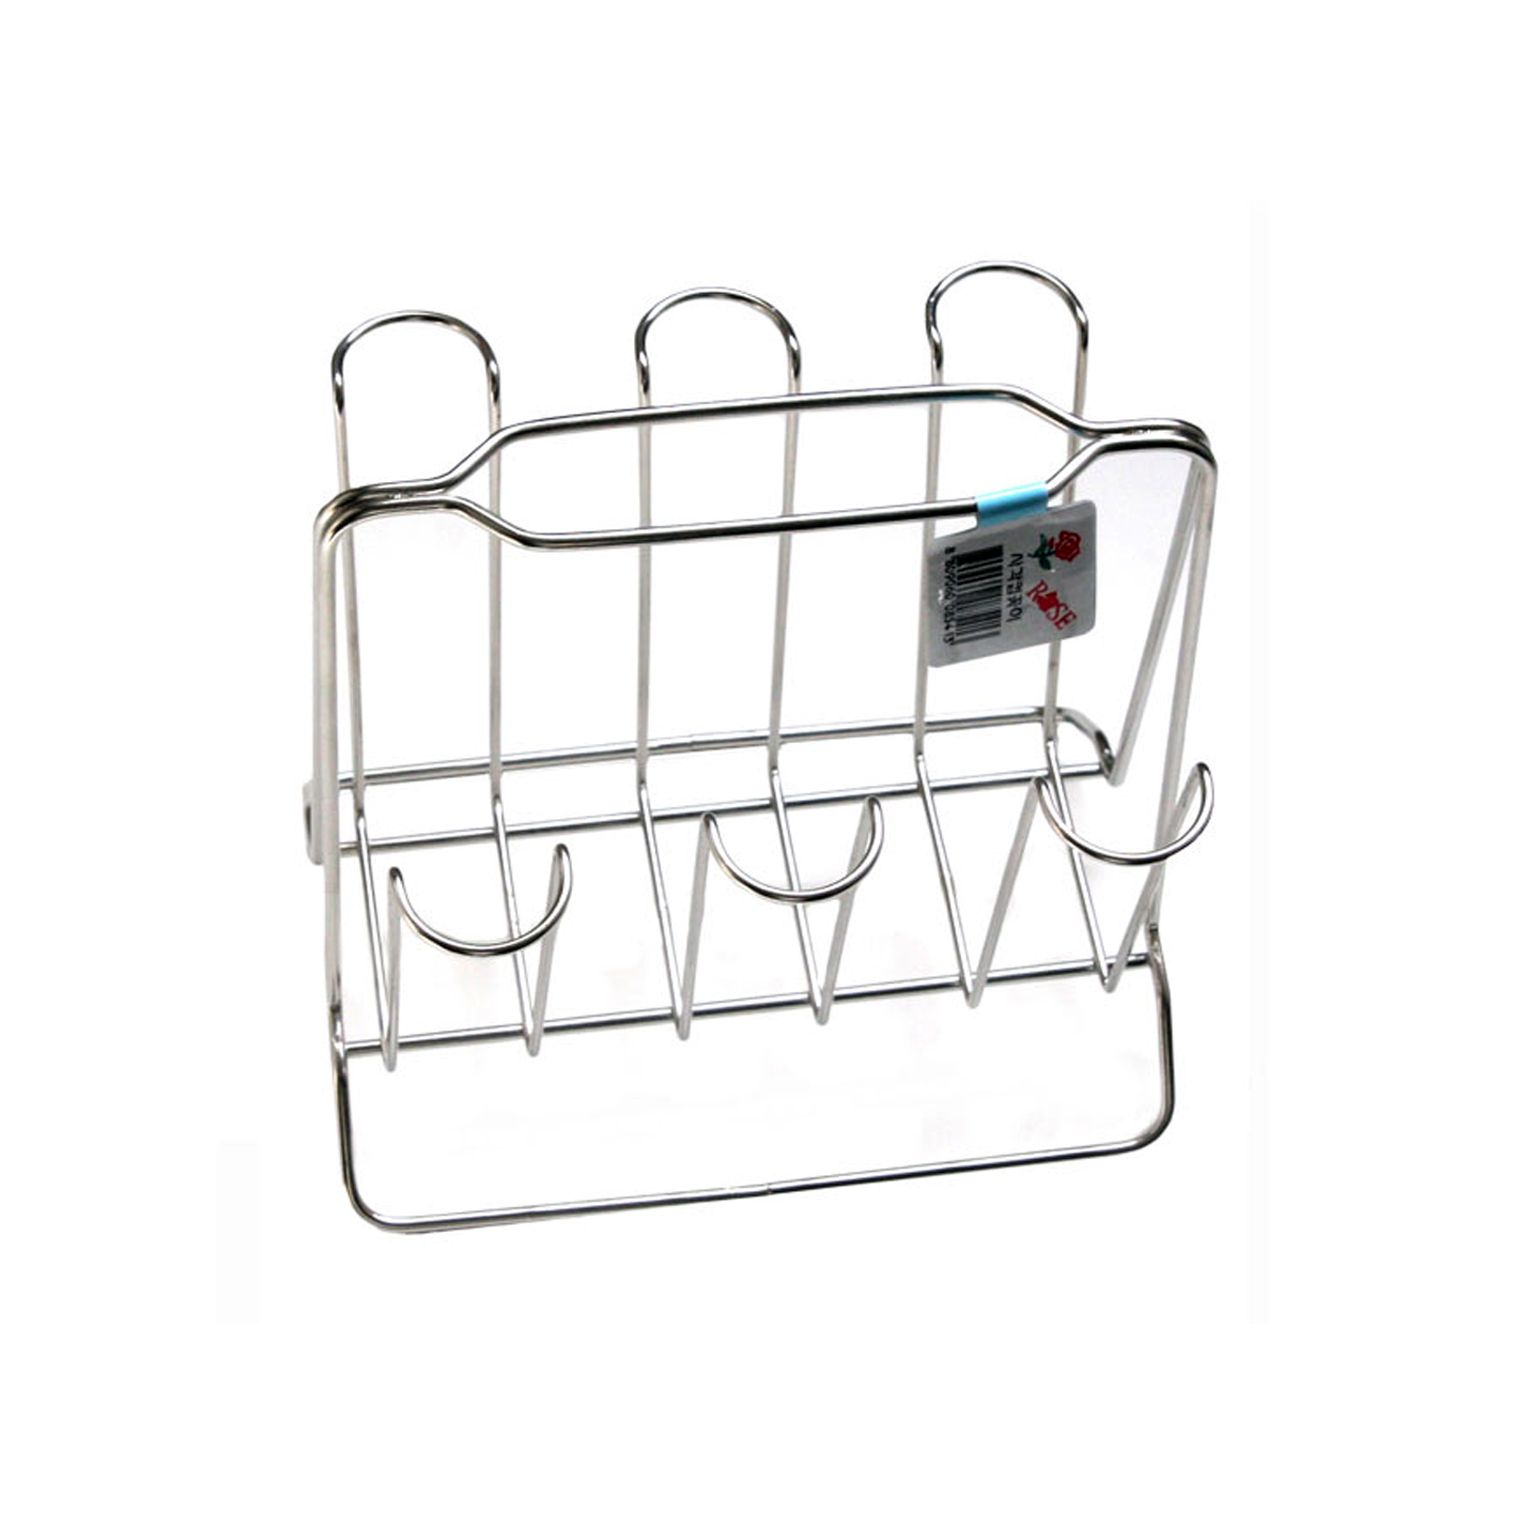 New chrome cup stand for 6 mug tea coffee cup holder for Kitchen design 9x7